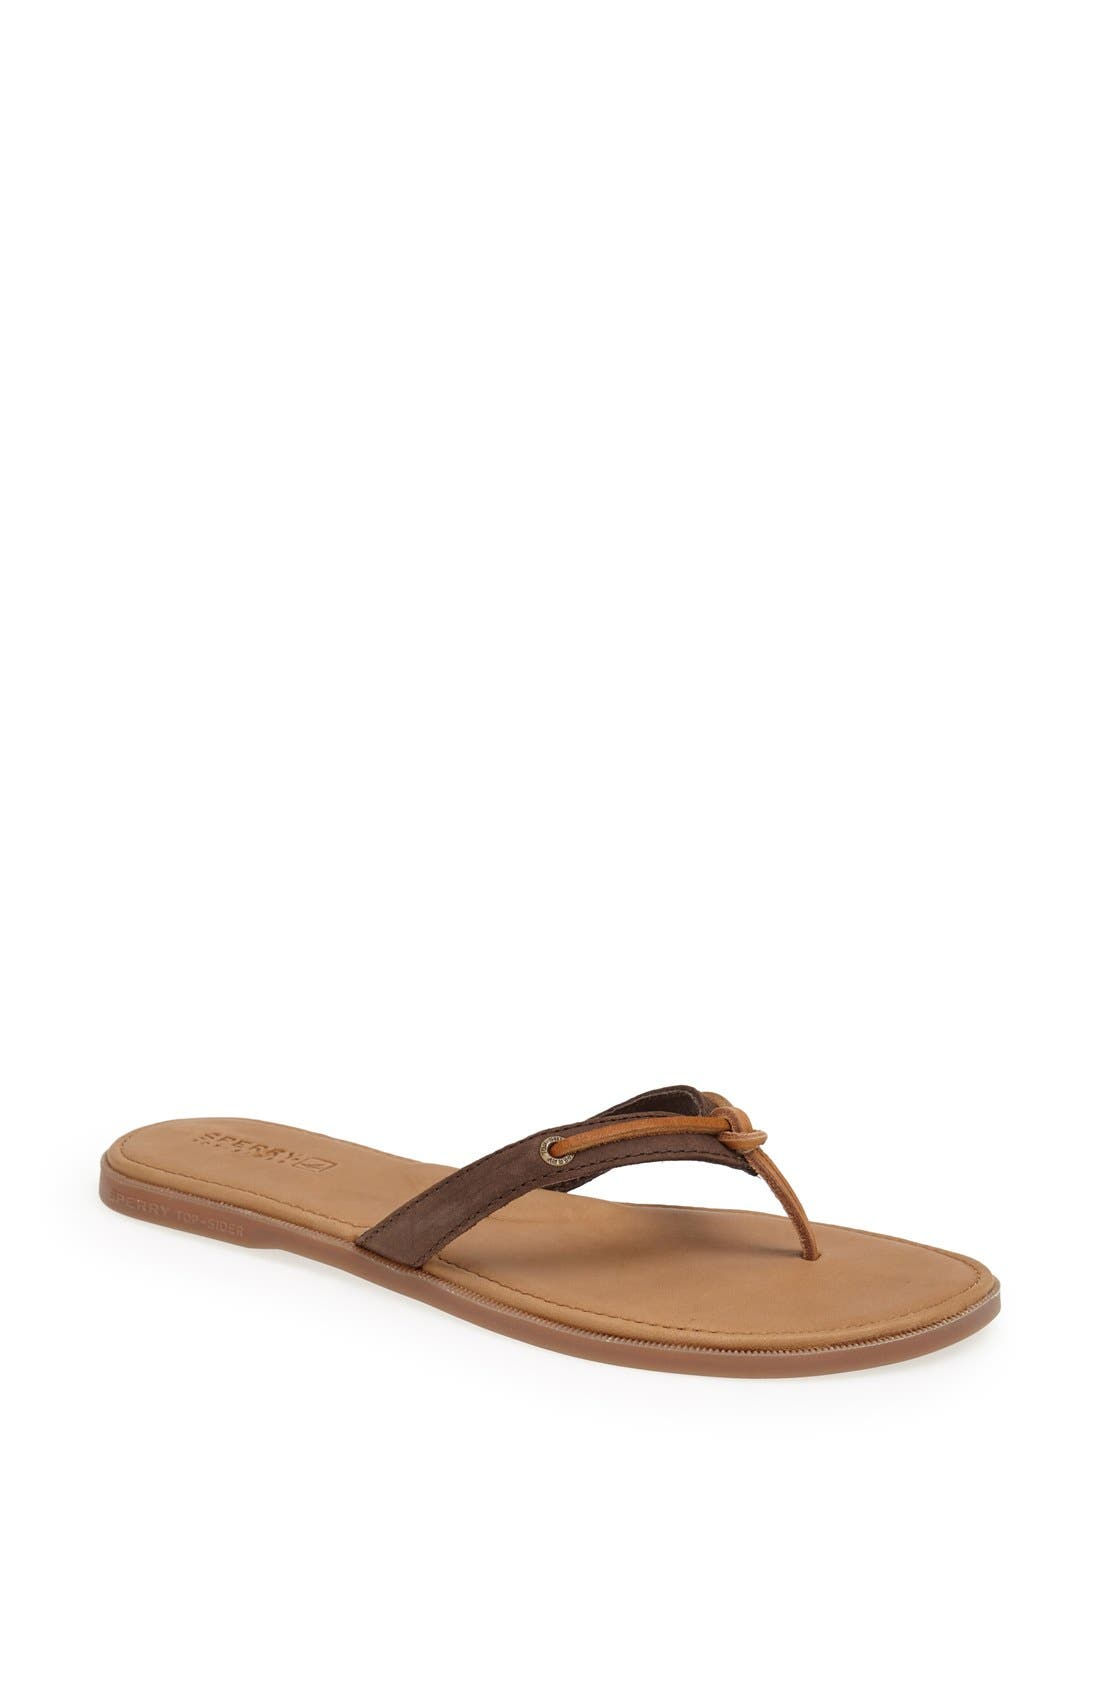 Main Image - Sperry Top-Sider® 'Calla' Sandal